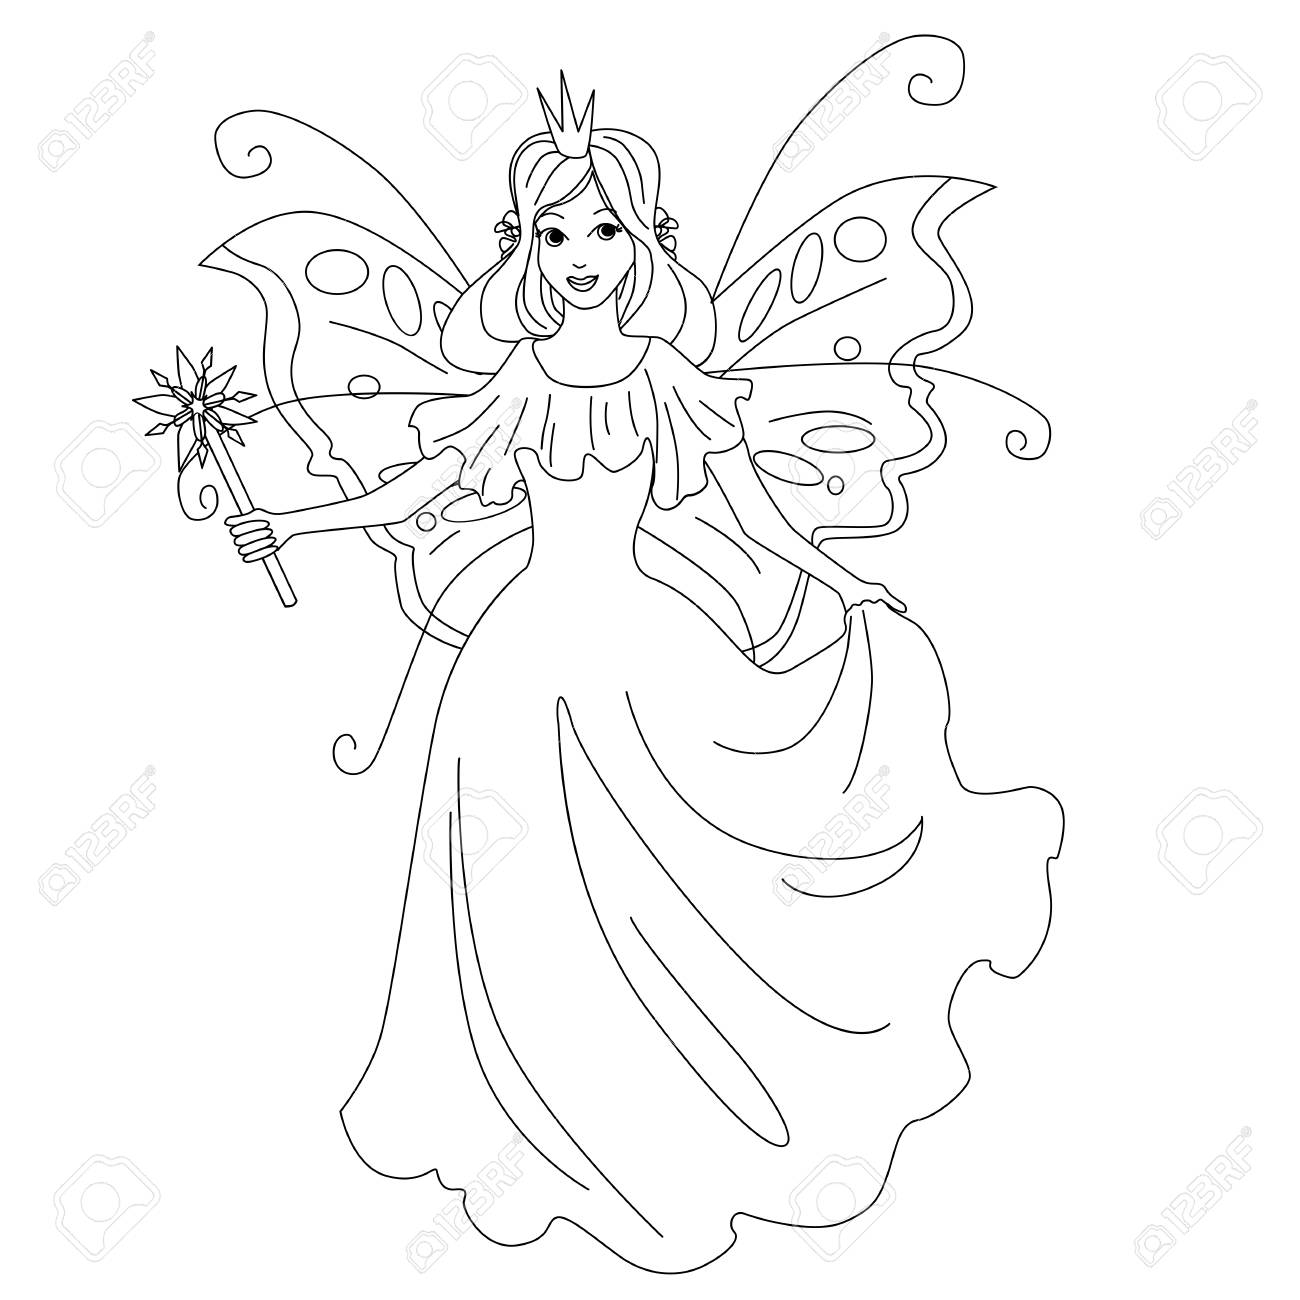 Magic Fairy Princess Isolated Illustration Vector Coloring Page Royalty Free Cliparts Vectors And Stock Illustration Image 127208115